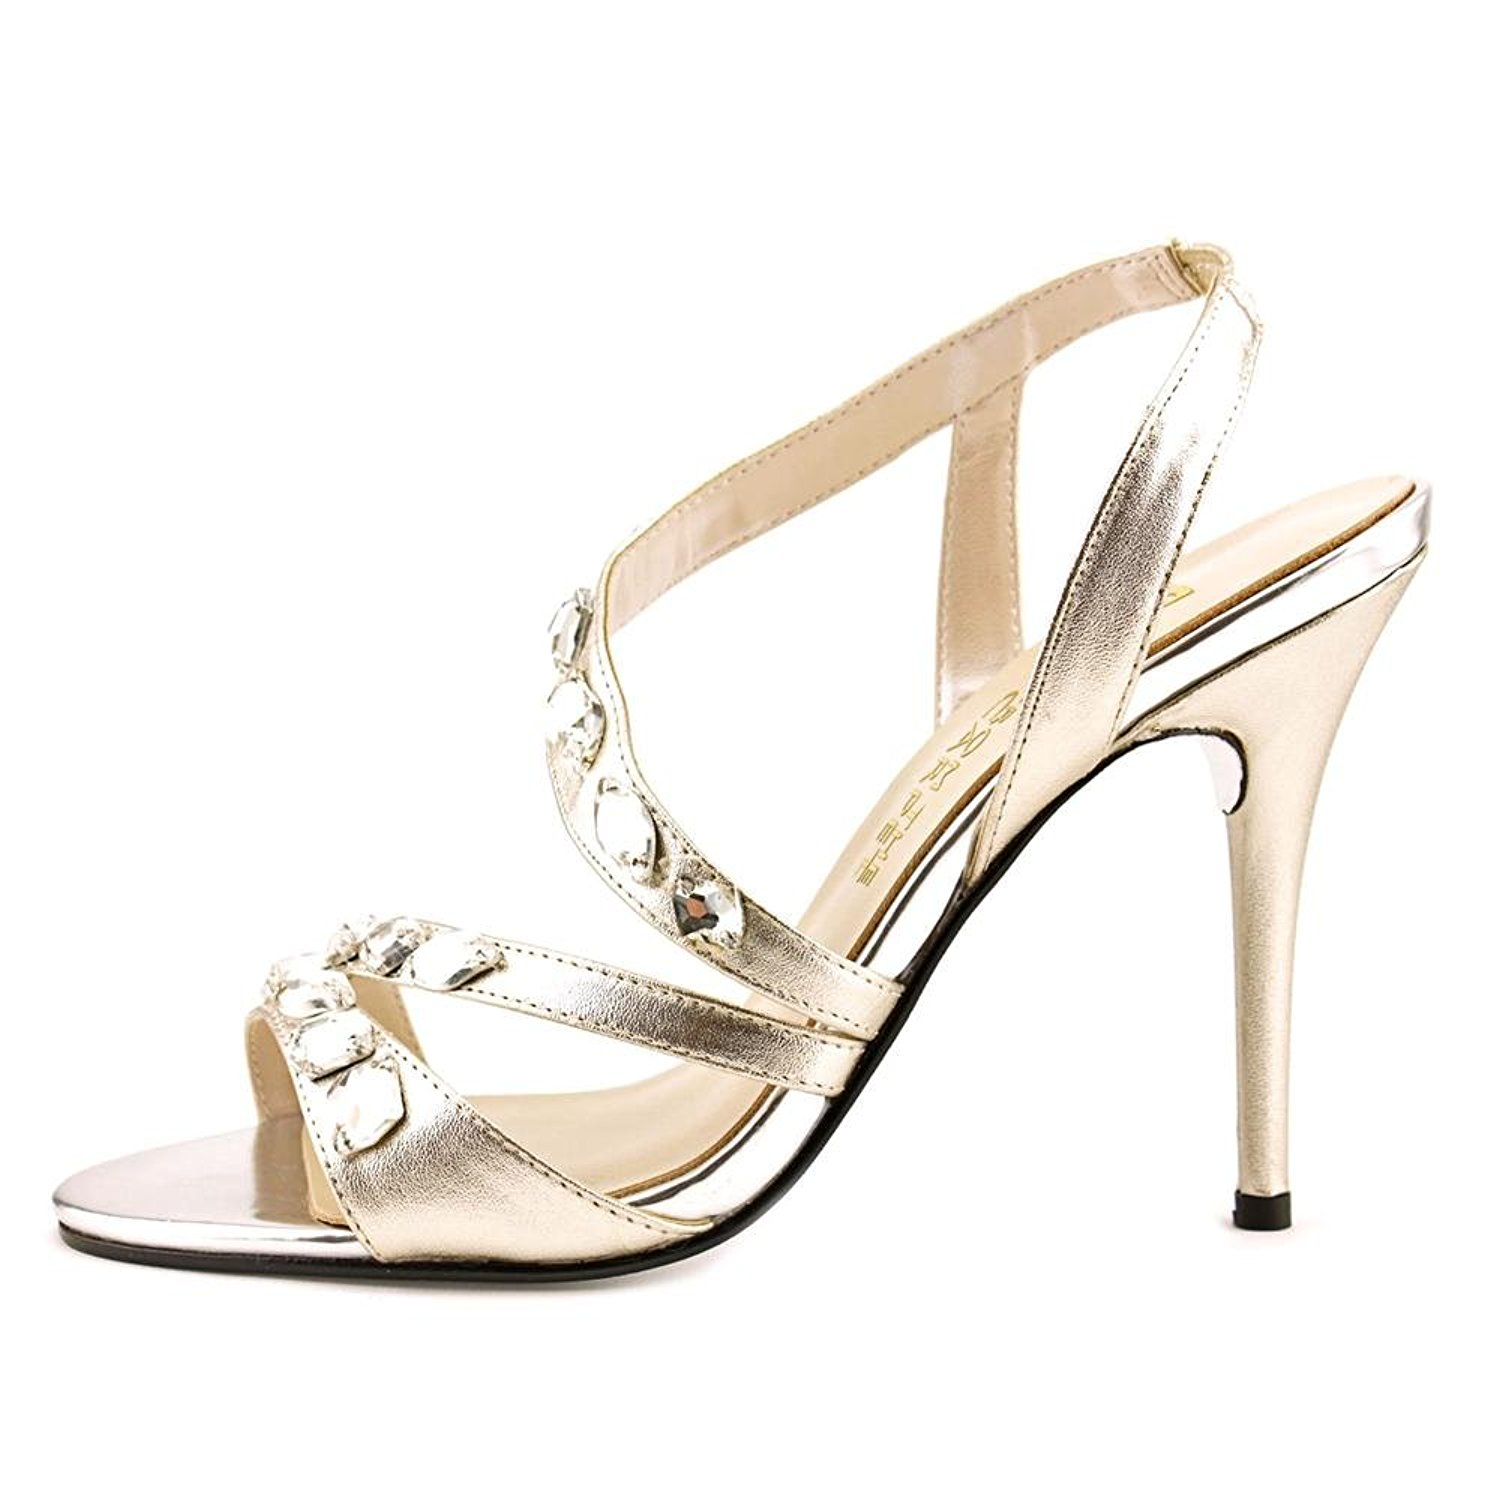 E Live From The Red Carpet Womens Goldee Open 9.5 Toe Ankle Platino Size 9.5 Open ee4d7d